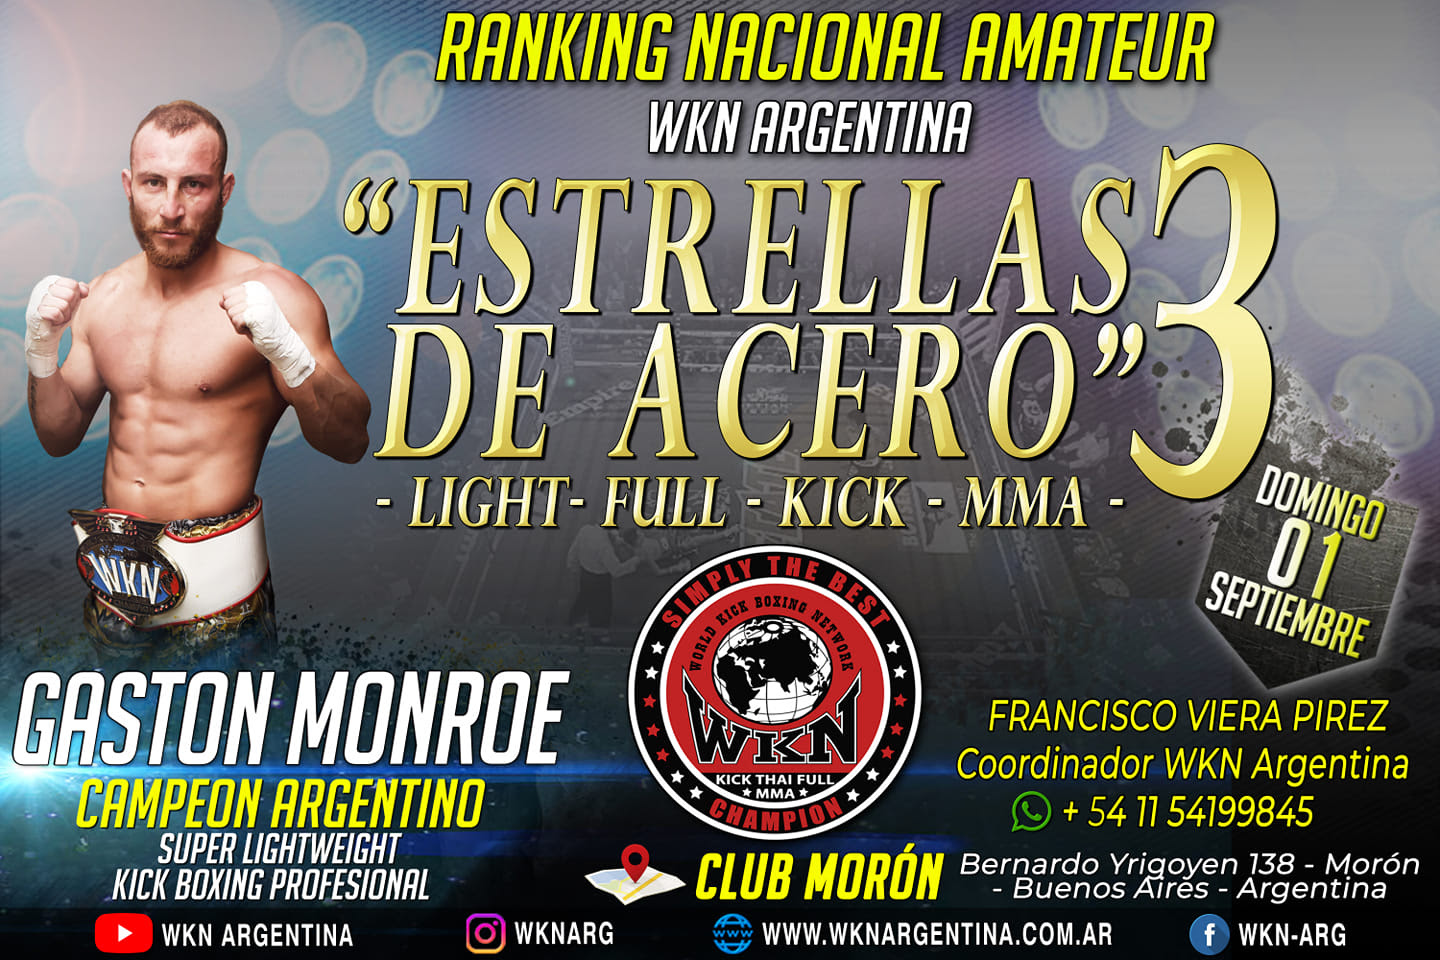 WKN returns to Argentina with Estrellas de Acero 3 -